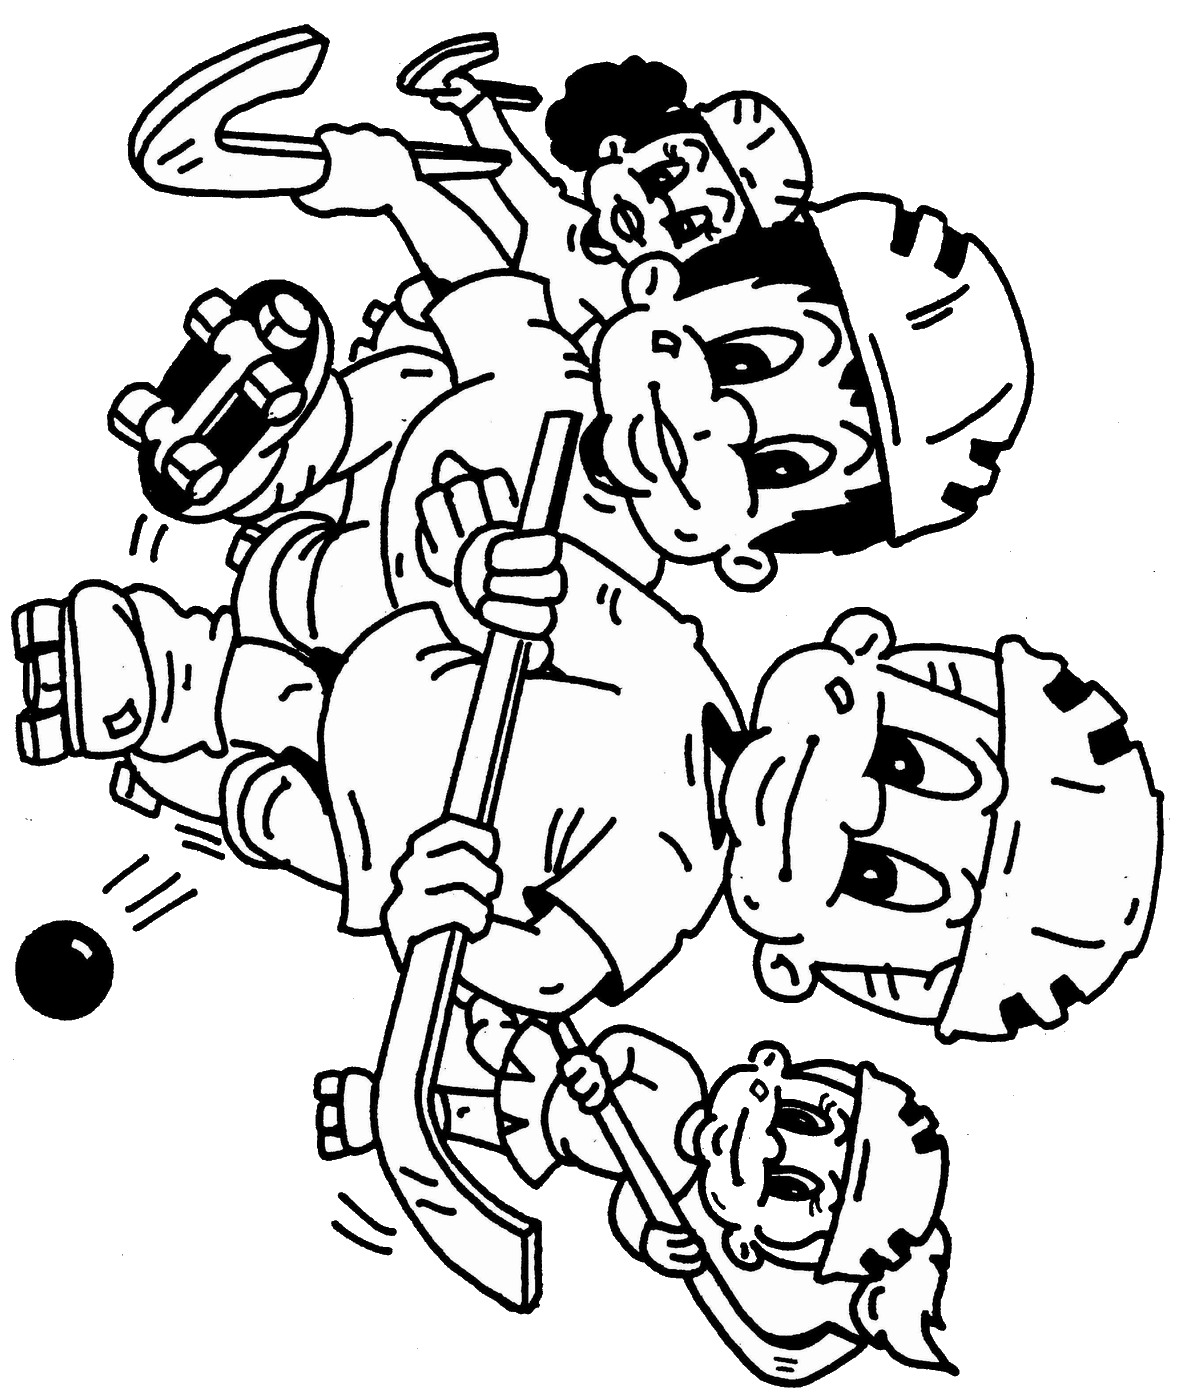 hockey coloring pages to print hockey kids coloring sheet printable hockey pages print coloring to